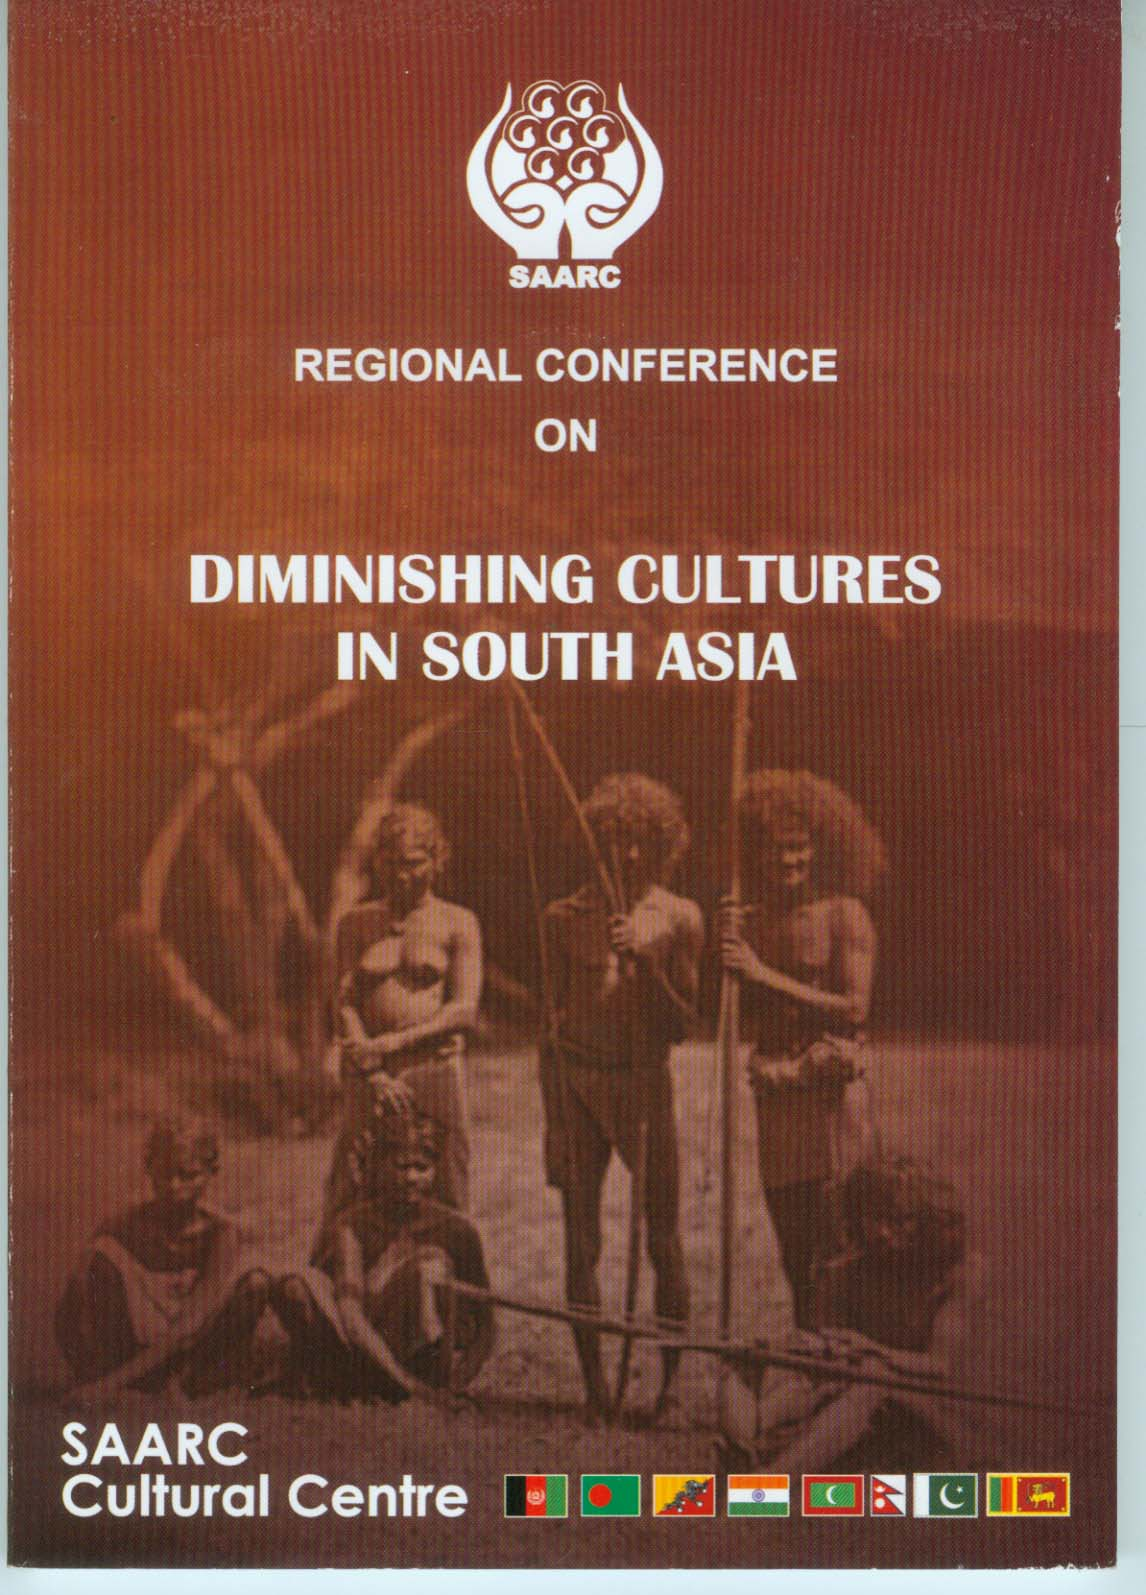 Regional Conference on Diminishing Cultures in South Asia Image